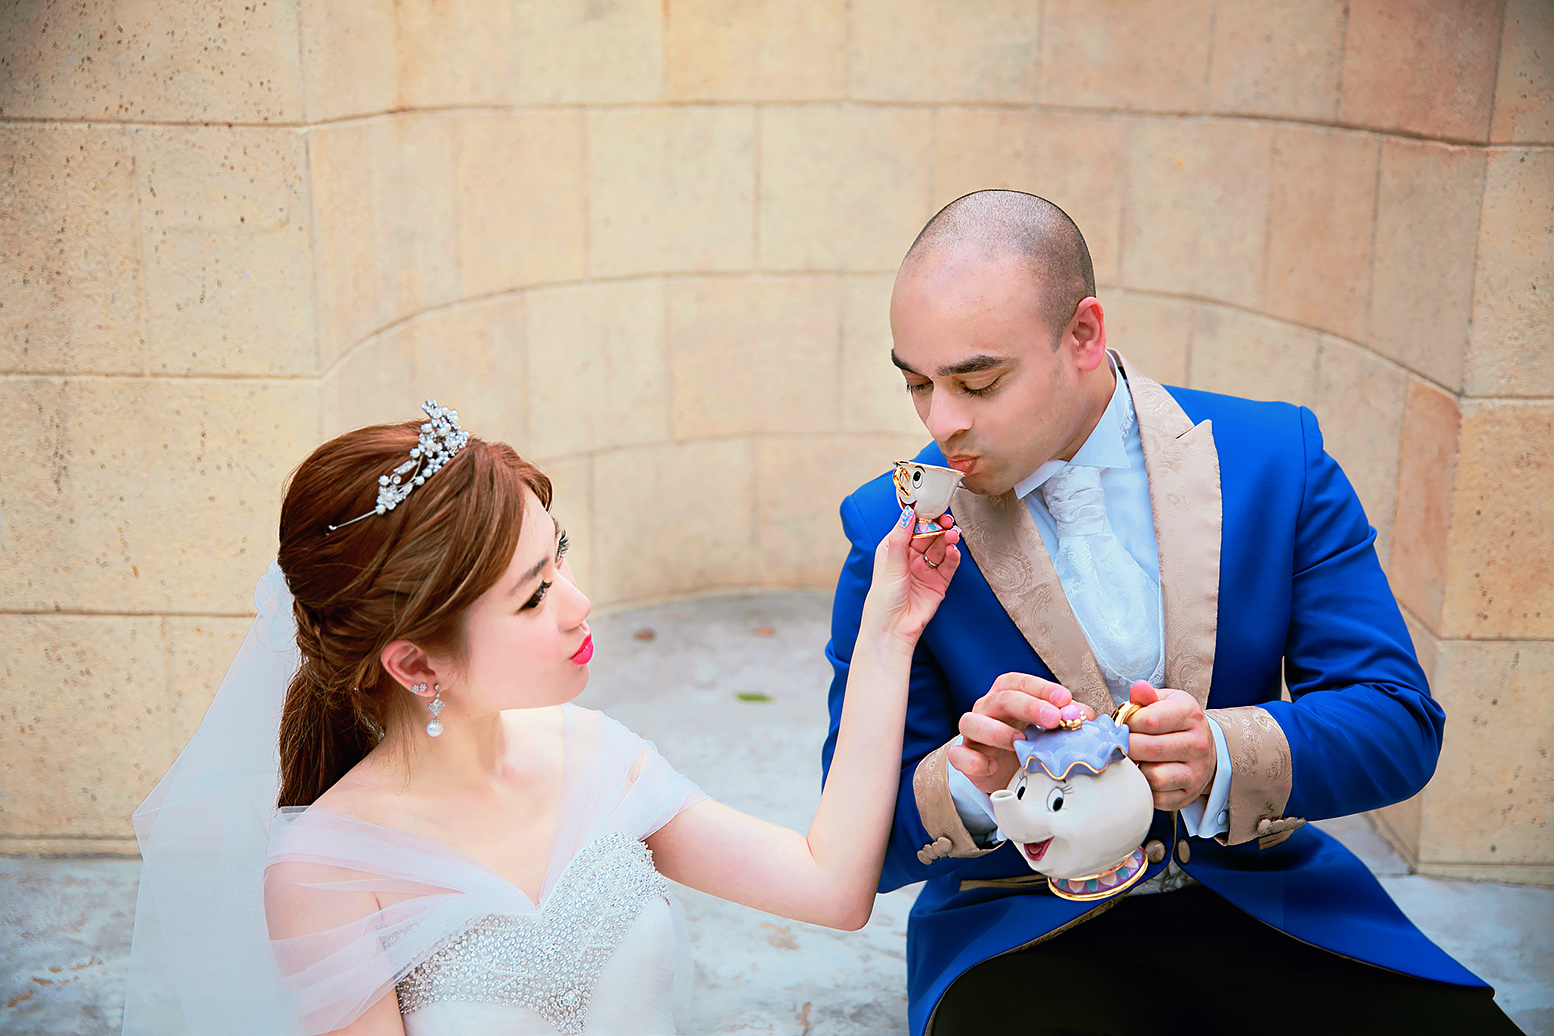 Bride and groom drinking tea from Disney's Beauty and the Beast